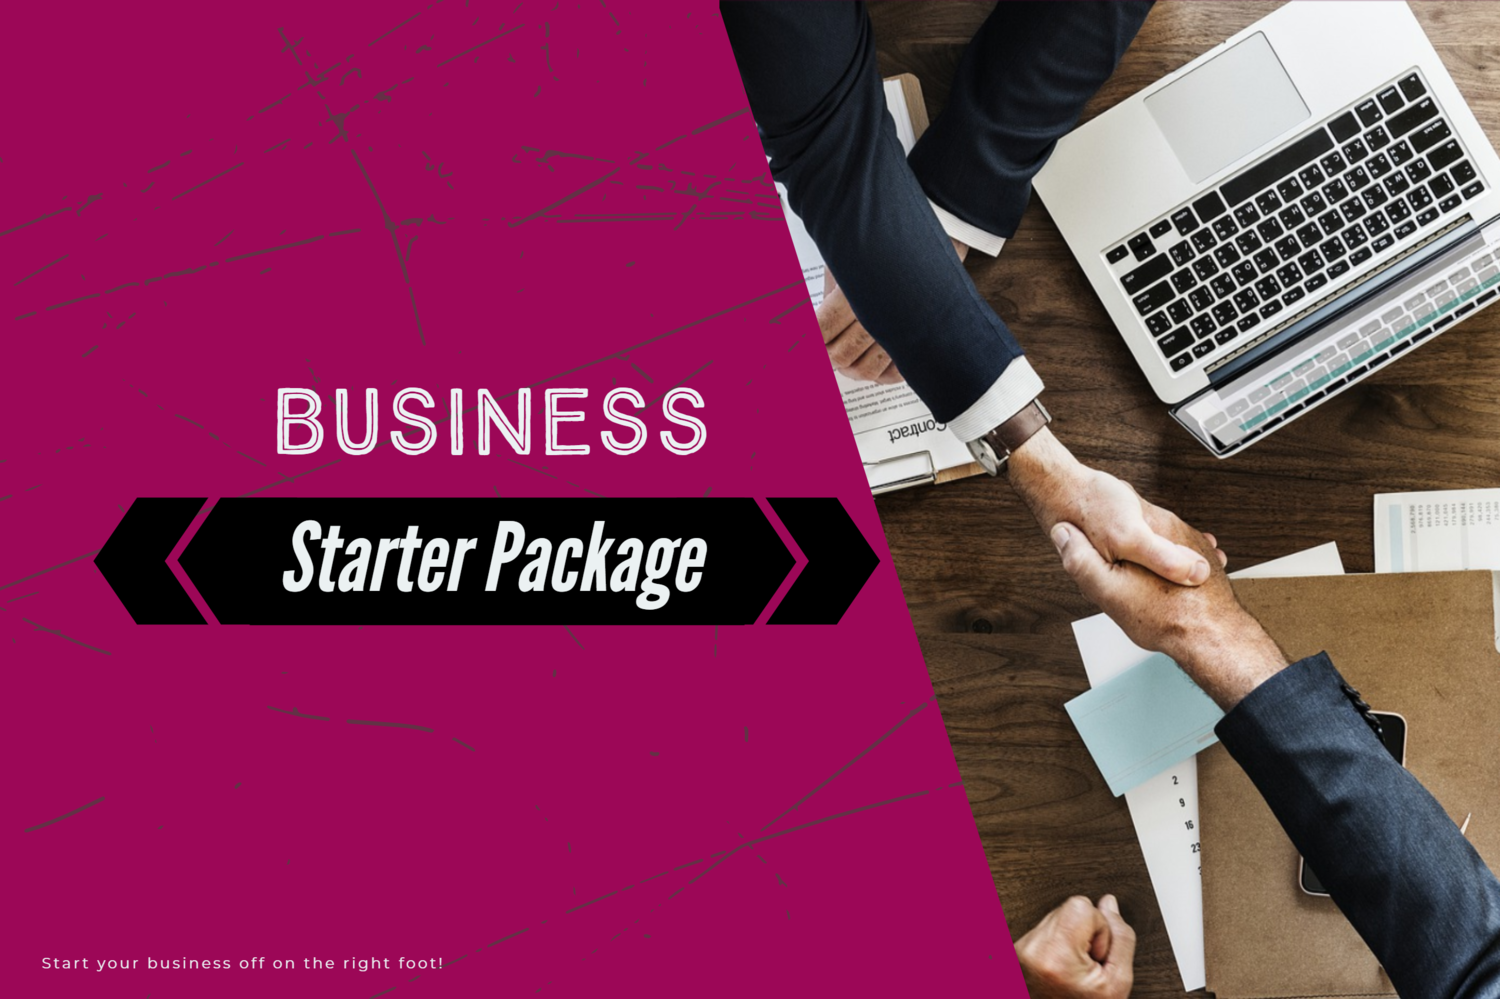 Business Starter Package